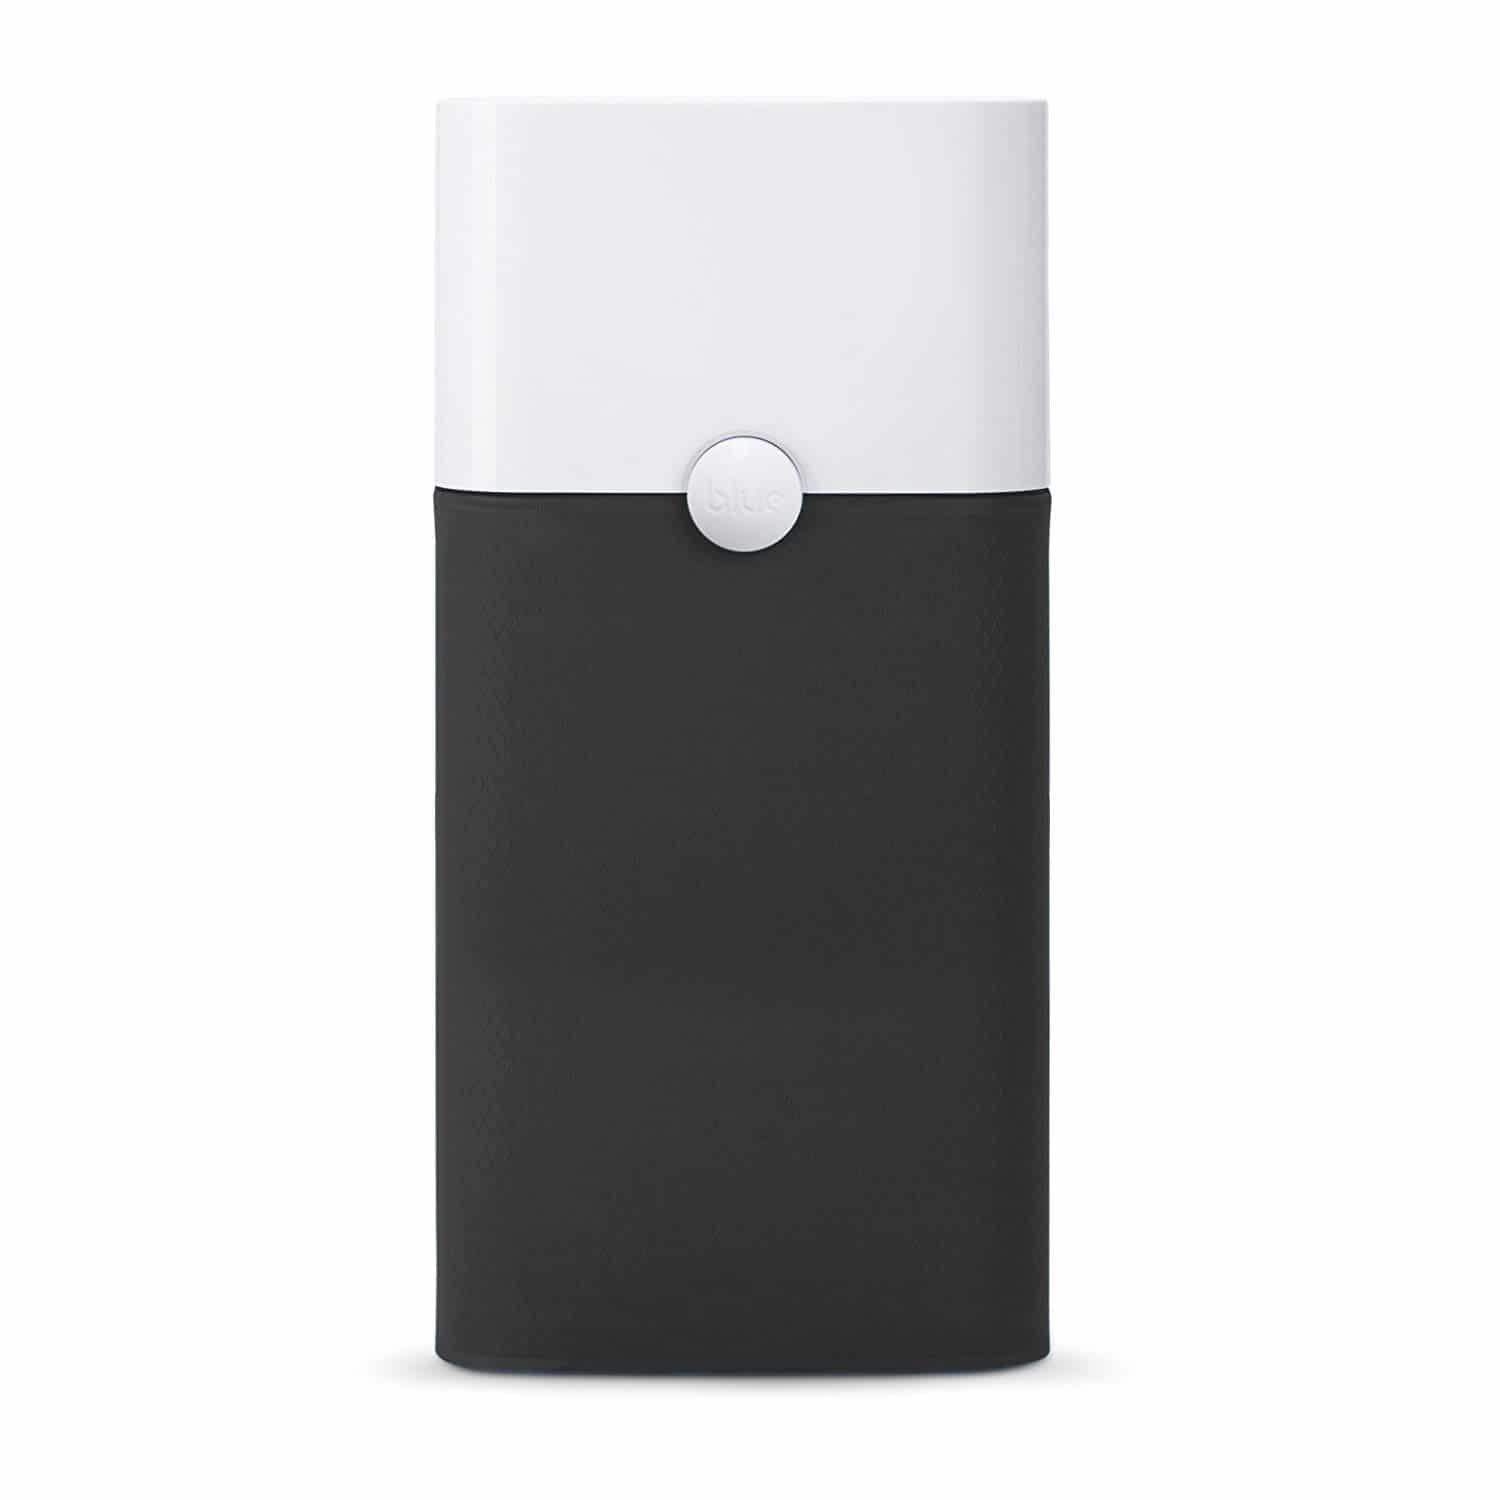 Blue Pra best air purifier topratedhome products